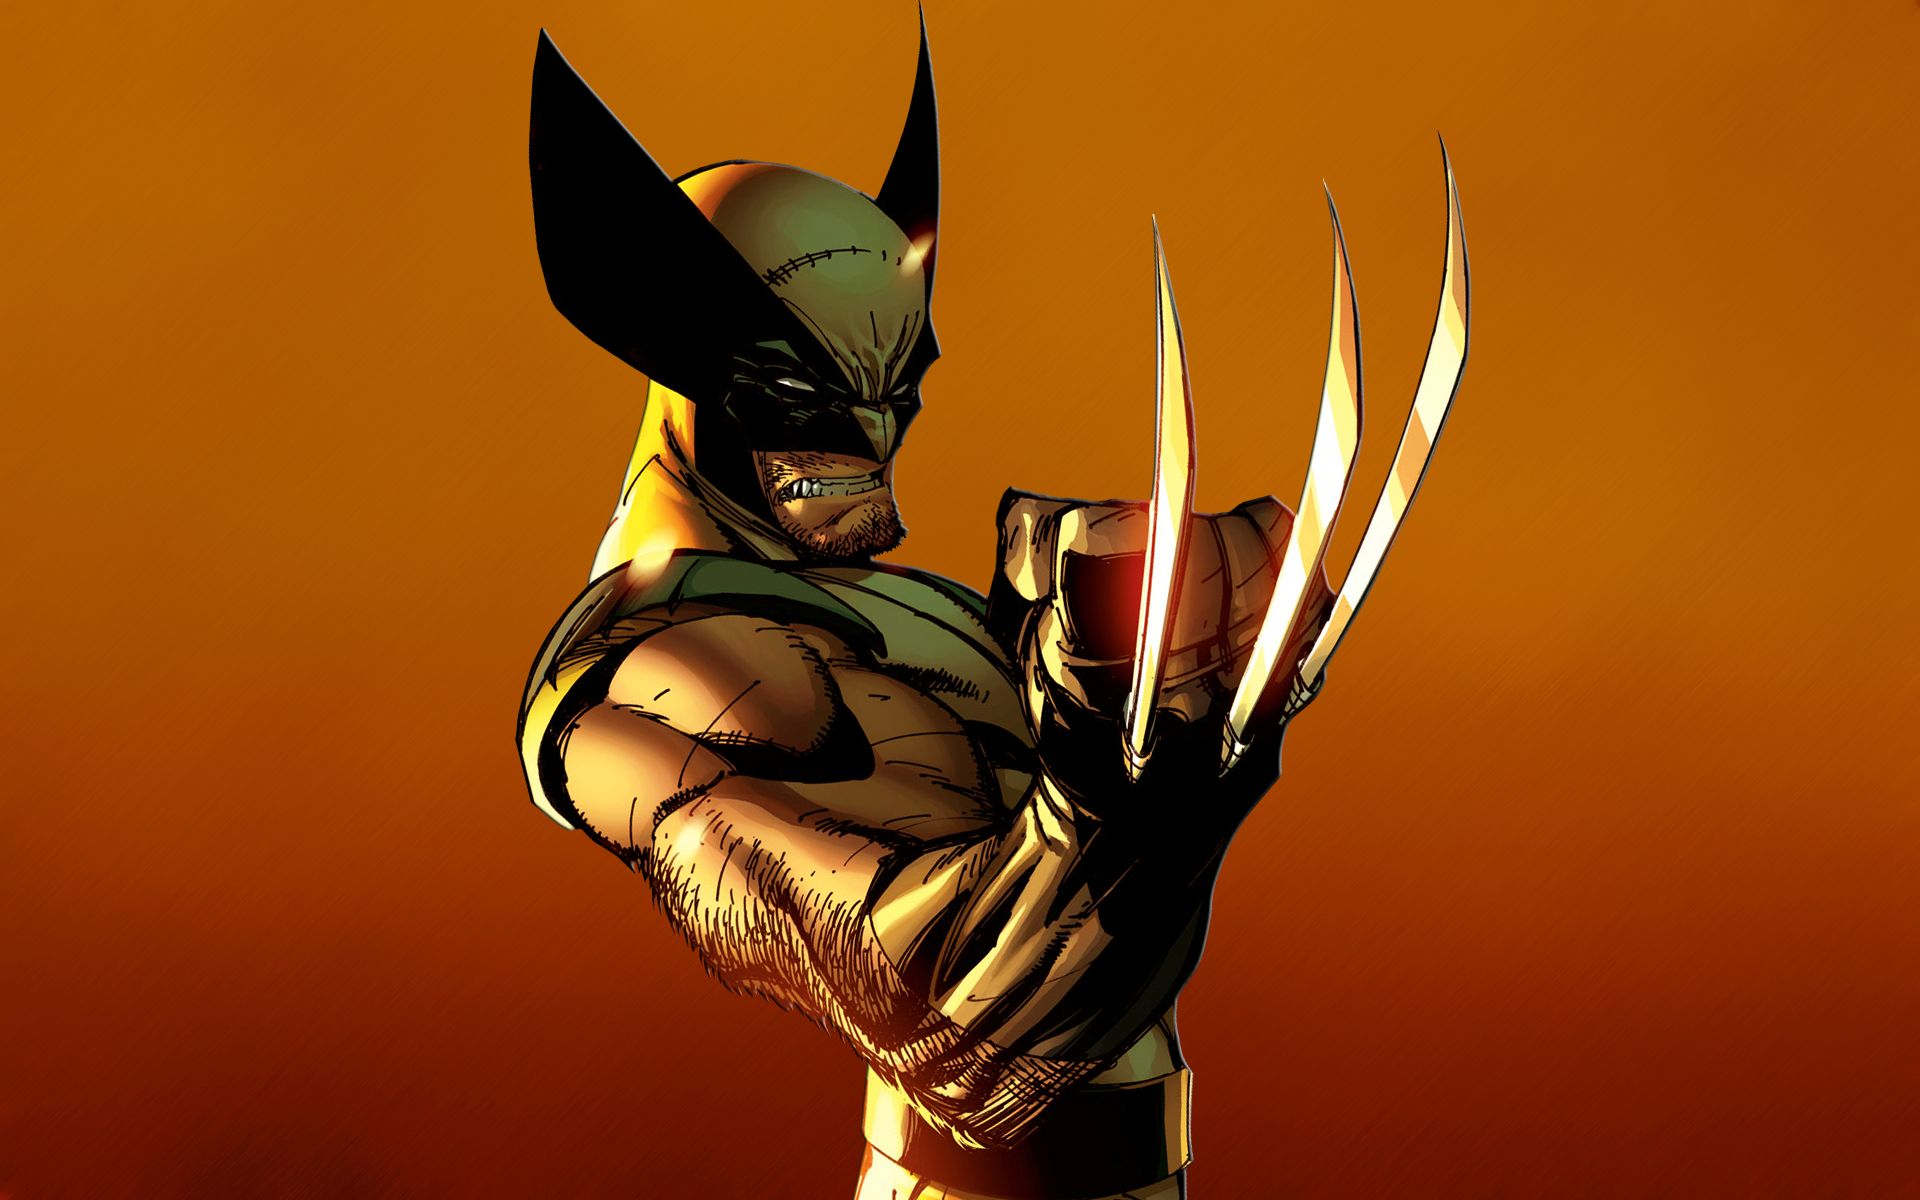 Lovely Wolverine Wallpaper Wolverine Wolverine Cartoon Full Hd Pictures